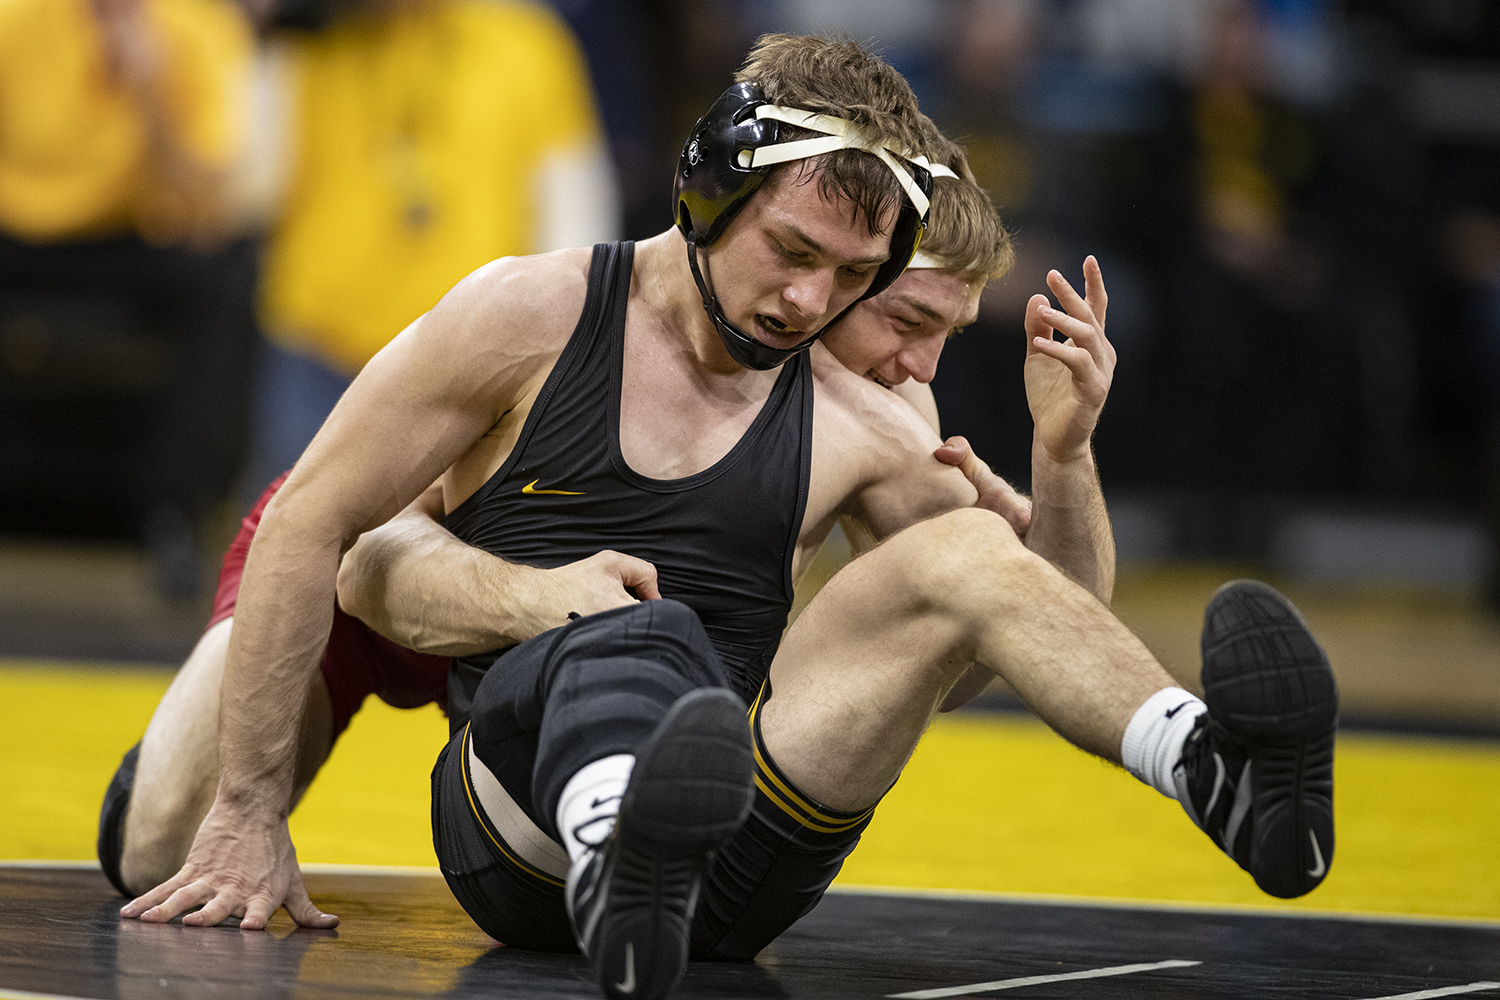 Iowa's 125-pound Spencer Lee wrestles Wisconsin's Michael Cullen during a wrestling match between No.1 Iowa and No. 6 Wisconsin at Carver-Hawkeye Arena on Sunday, Dec. 1, 2019. Lee won by technical fall in 3:13.